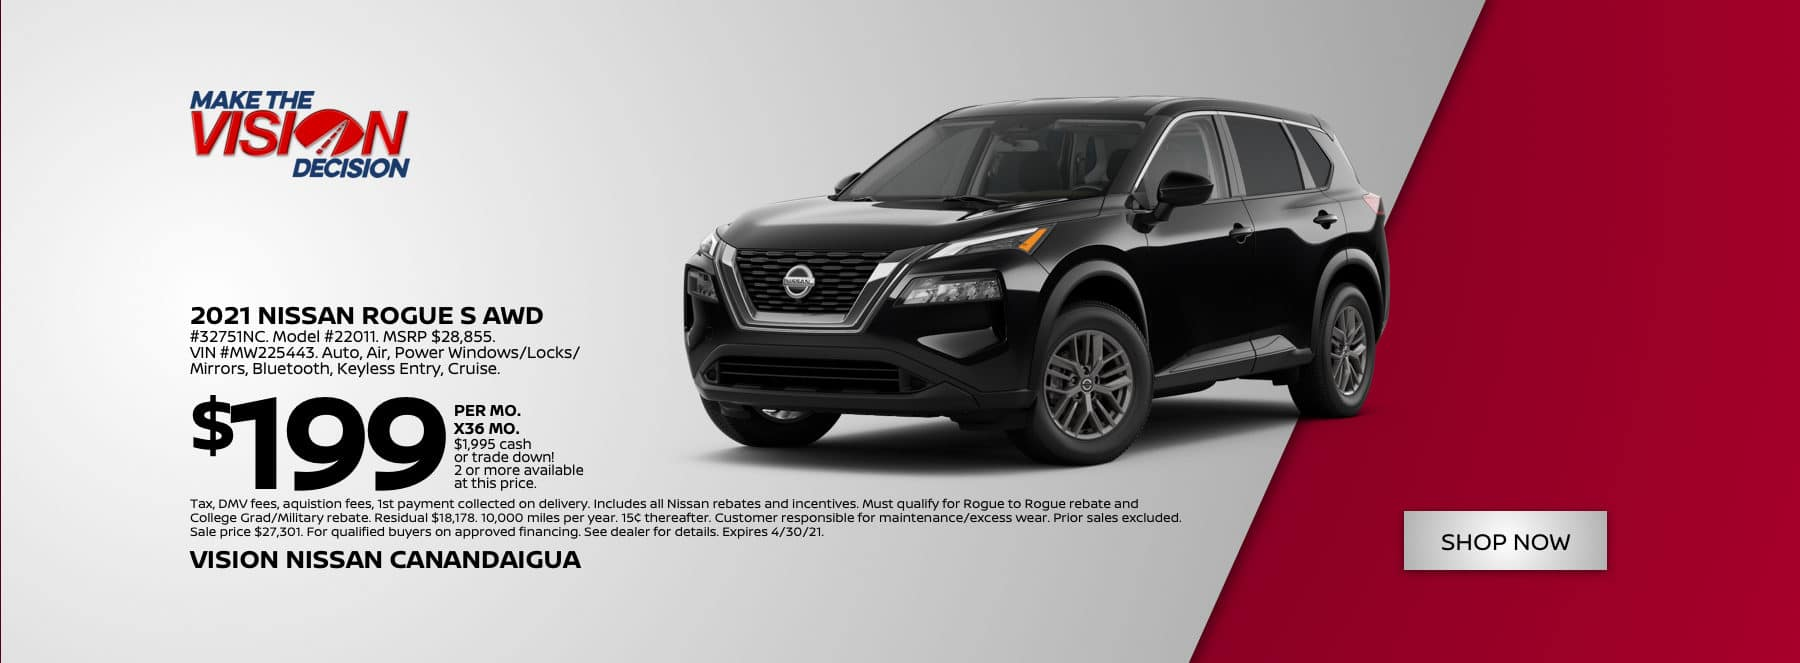 Vision-Nissan-Sliders-0305-Rogue-Can